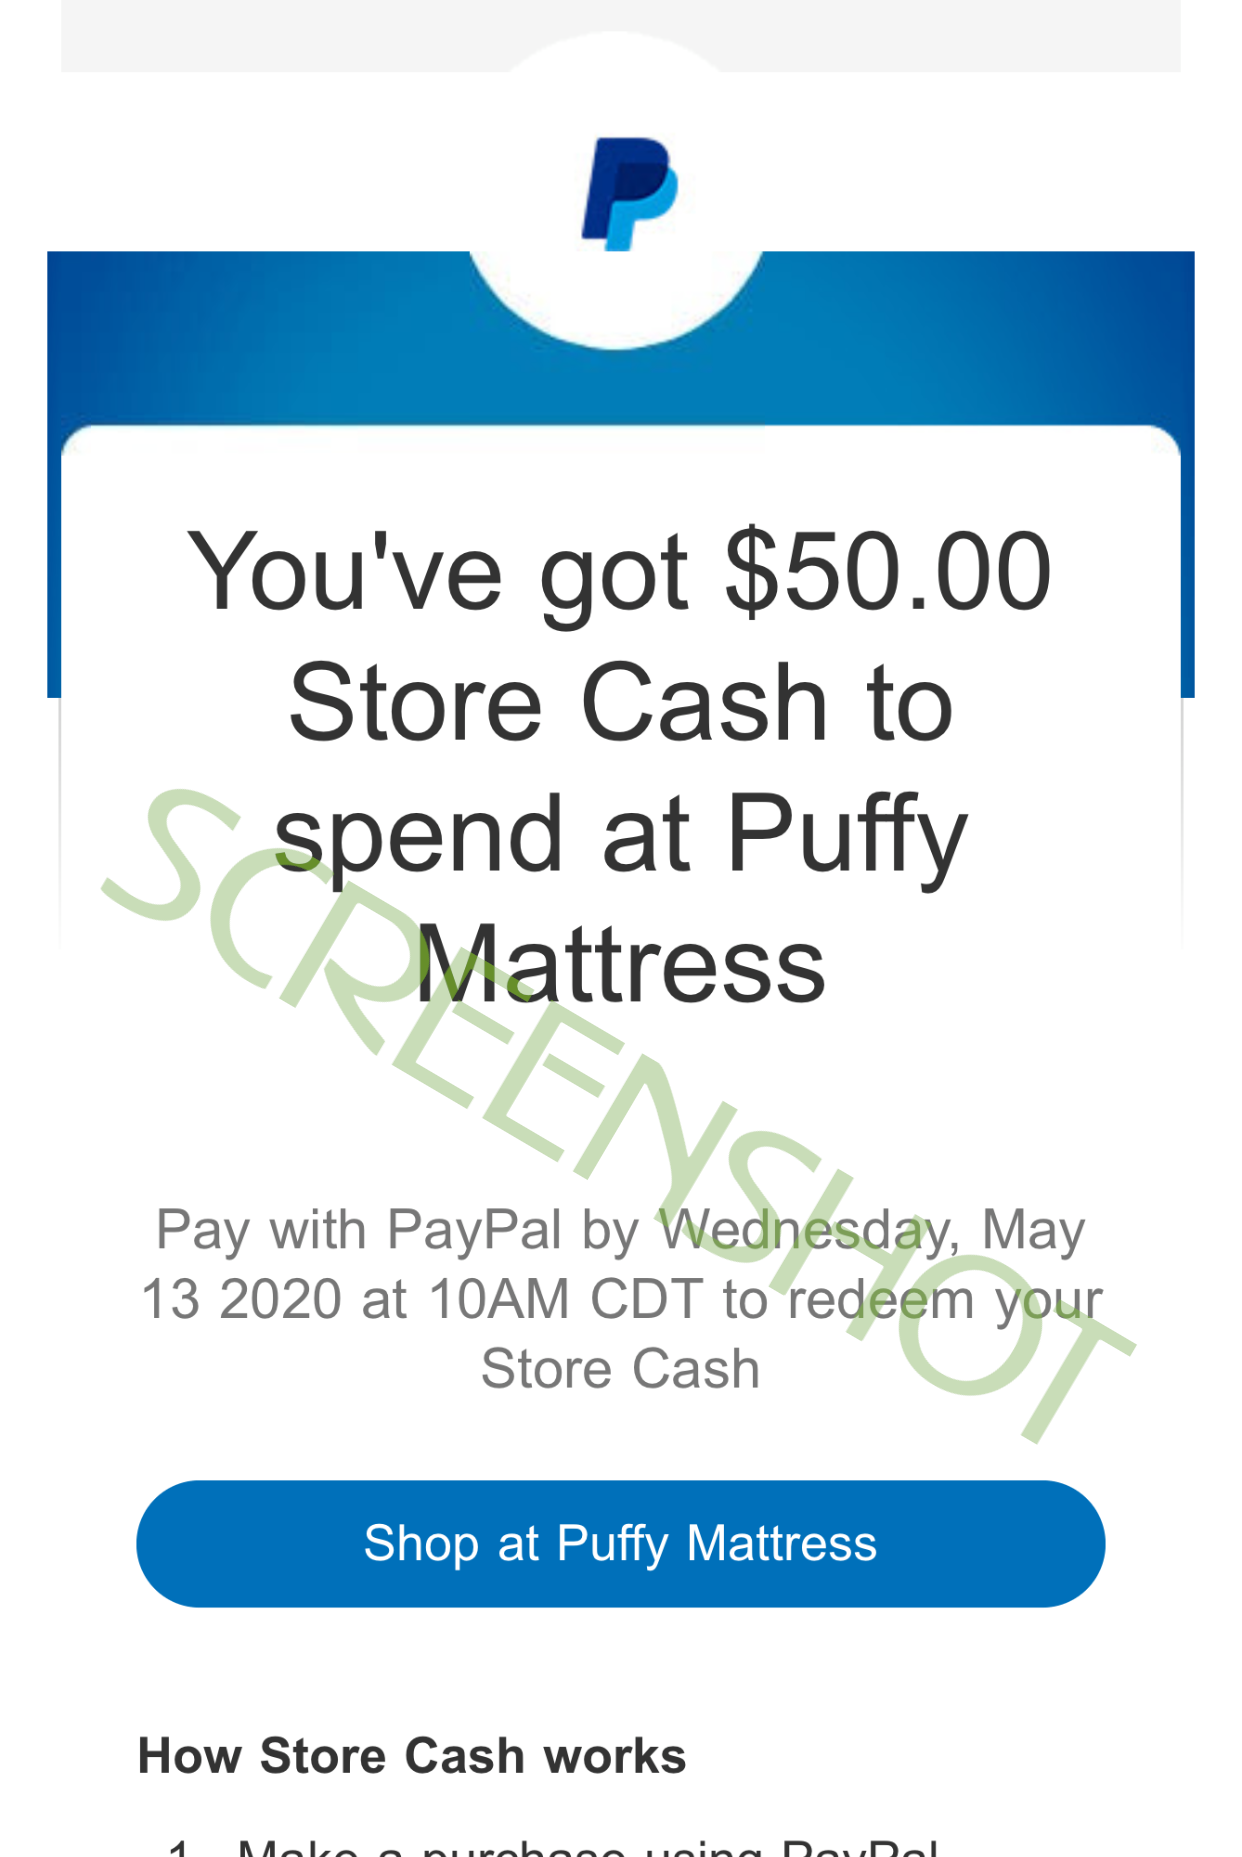 You've got $50.00 Store Cash to spend at Puffy Mattress Email from PayPal